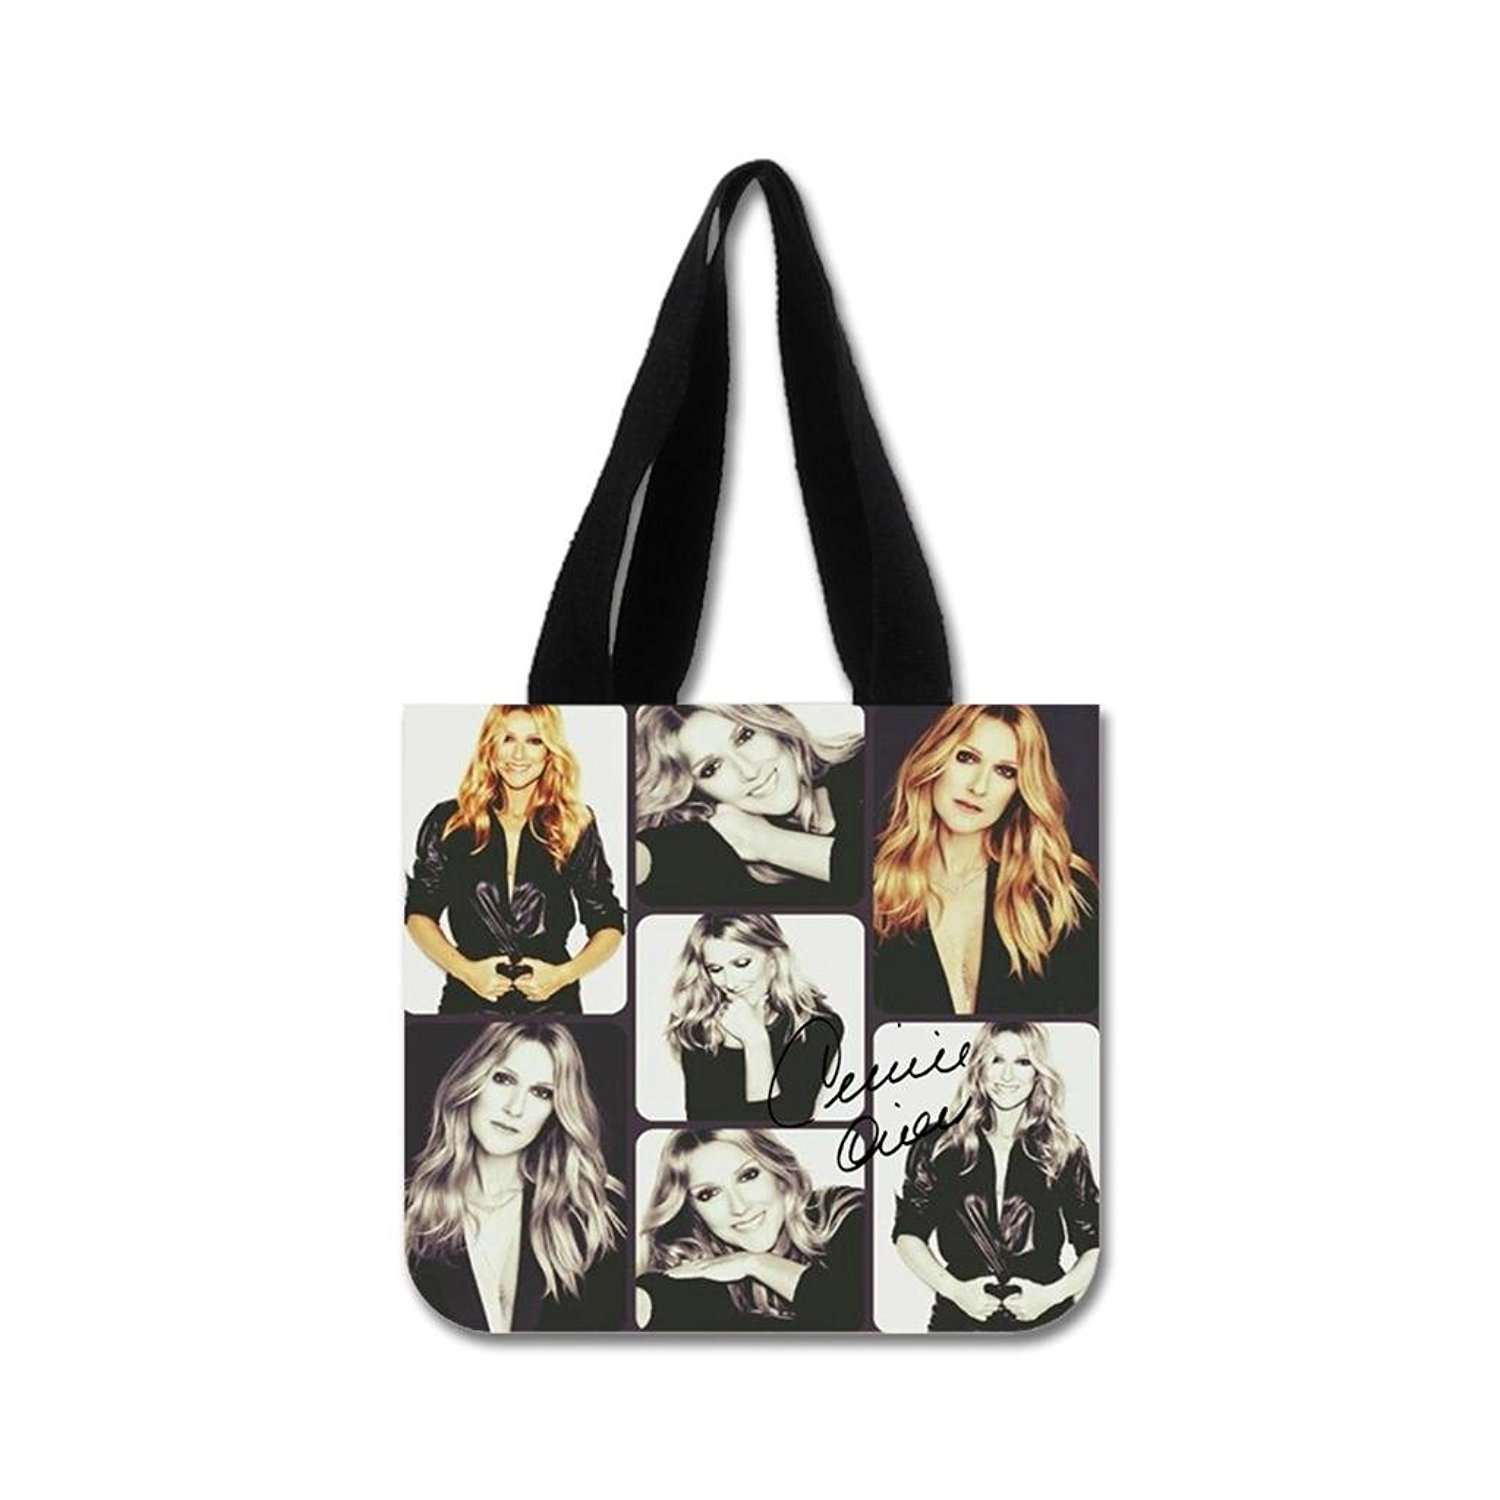 c1acc3442a Get Quotations · Honey Cotton Canvas Durable Shopping Bag Celine Dion  Collage Custom Tote Bag 02 Model (Two